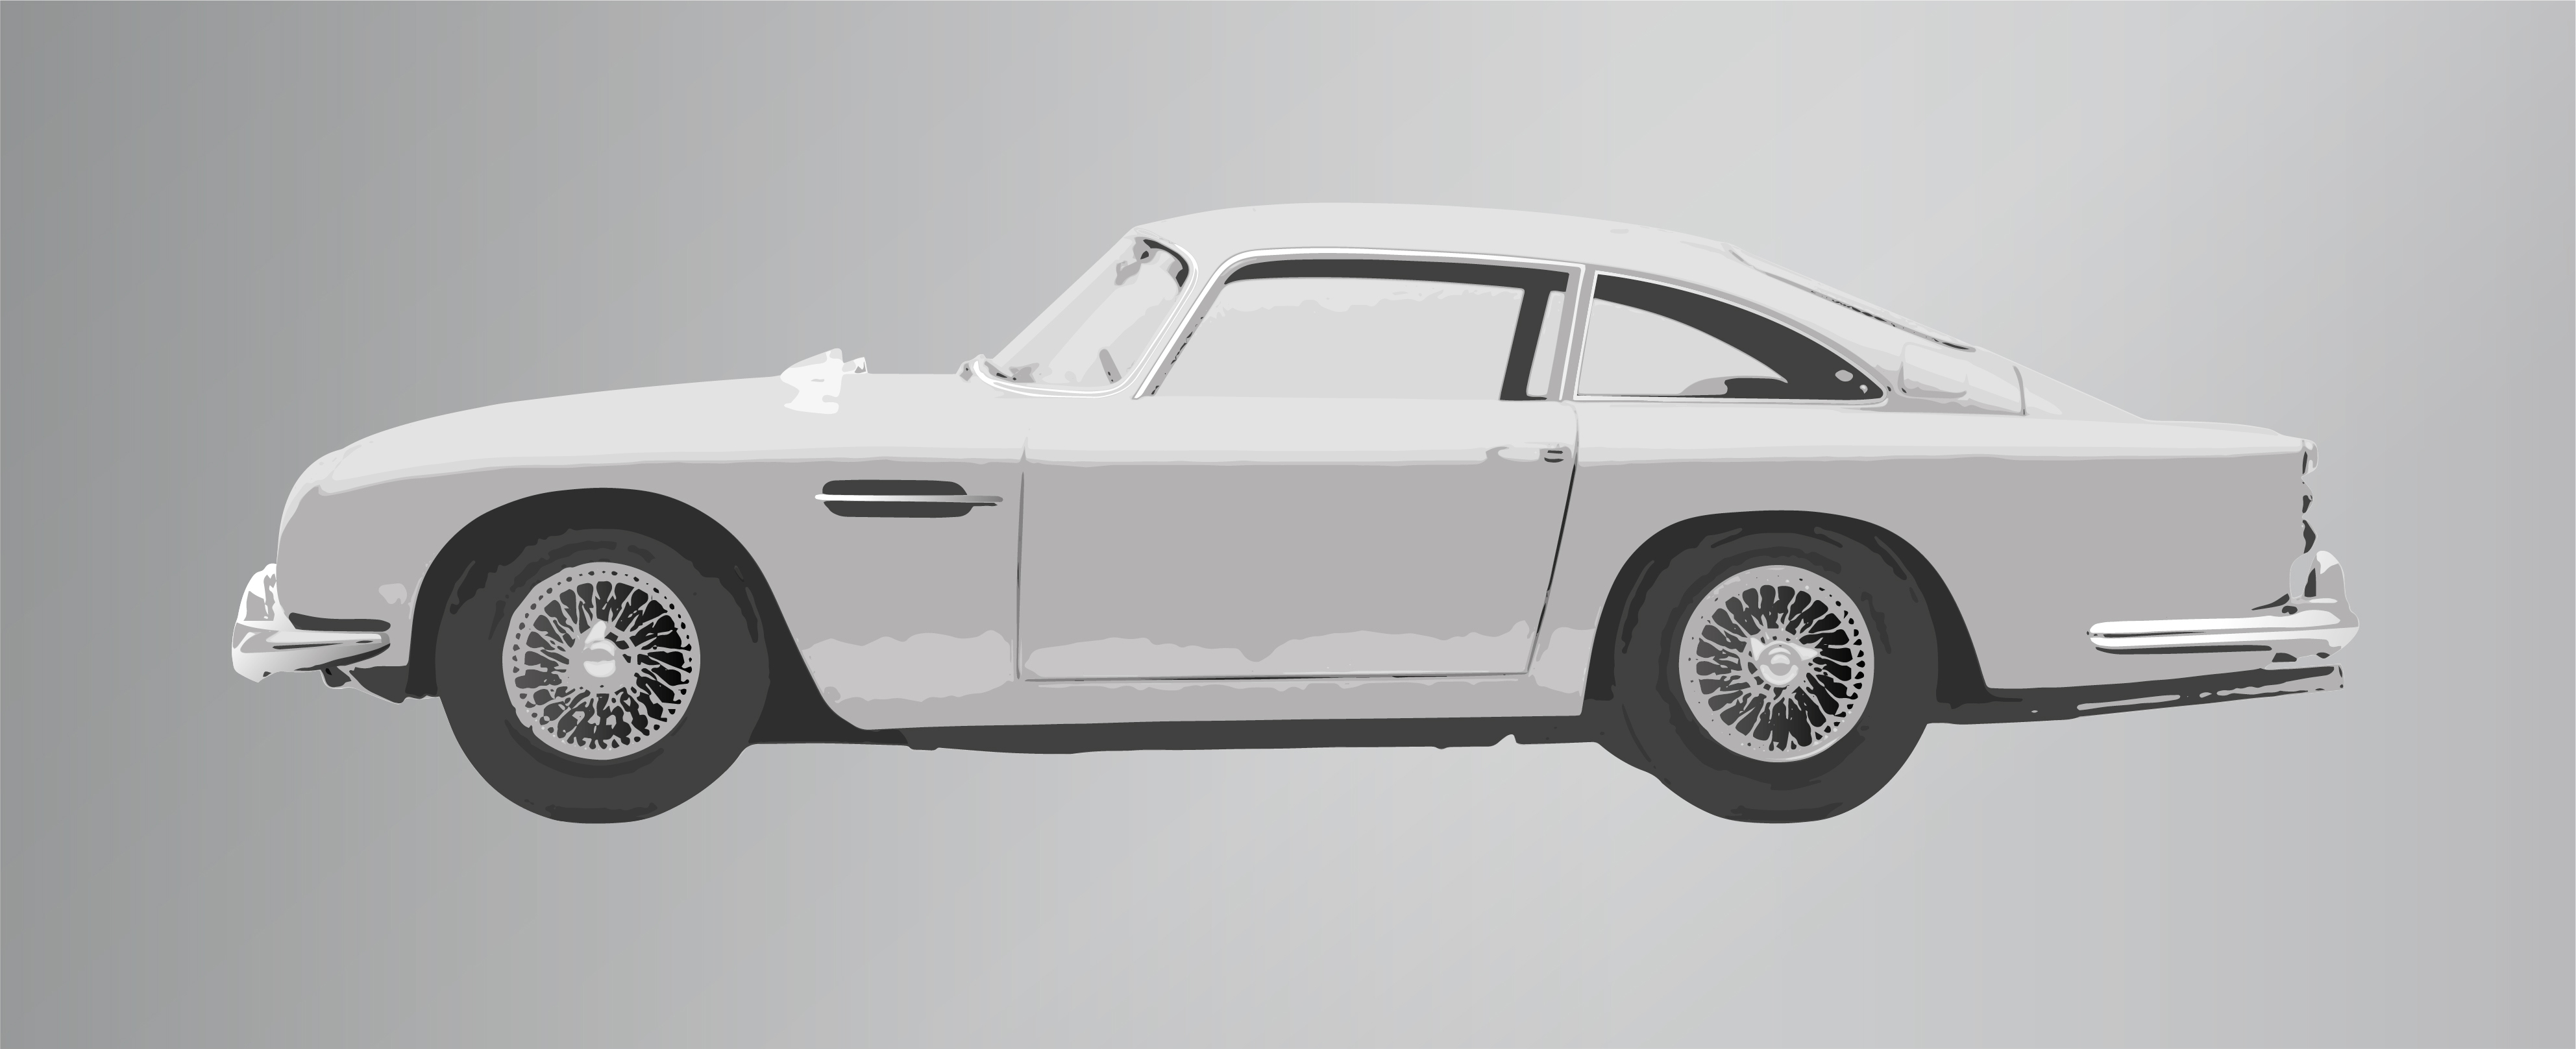 aston martin db5 classic car collection | ella freire | limited